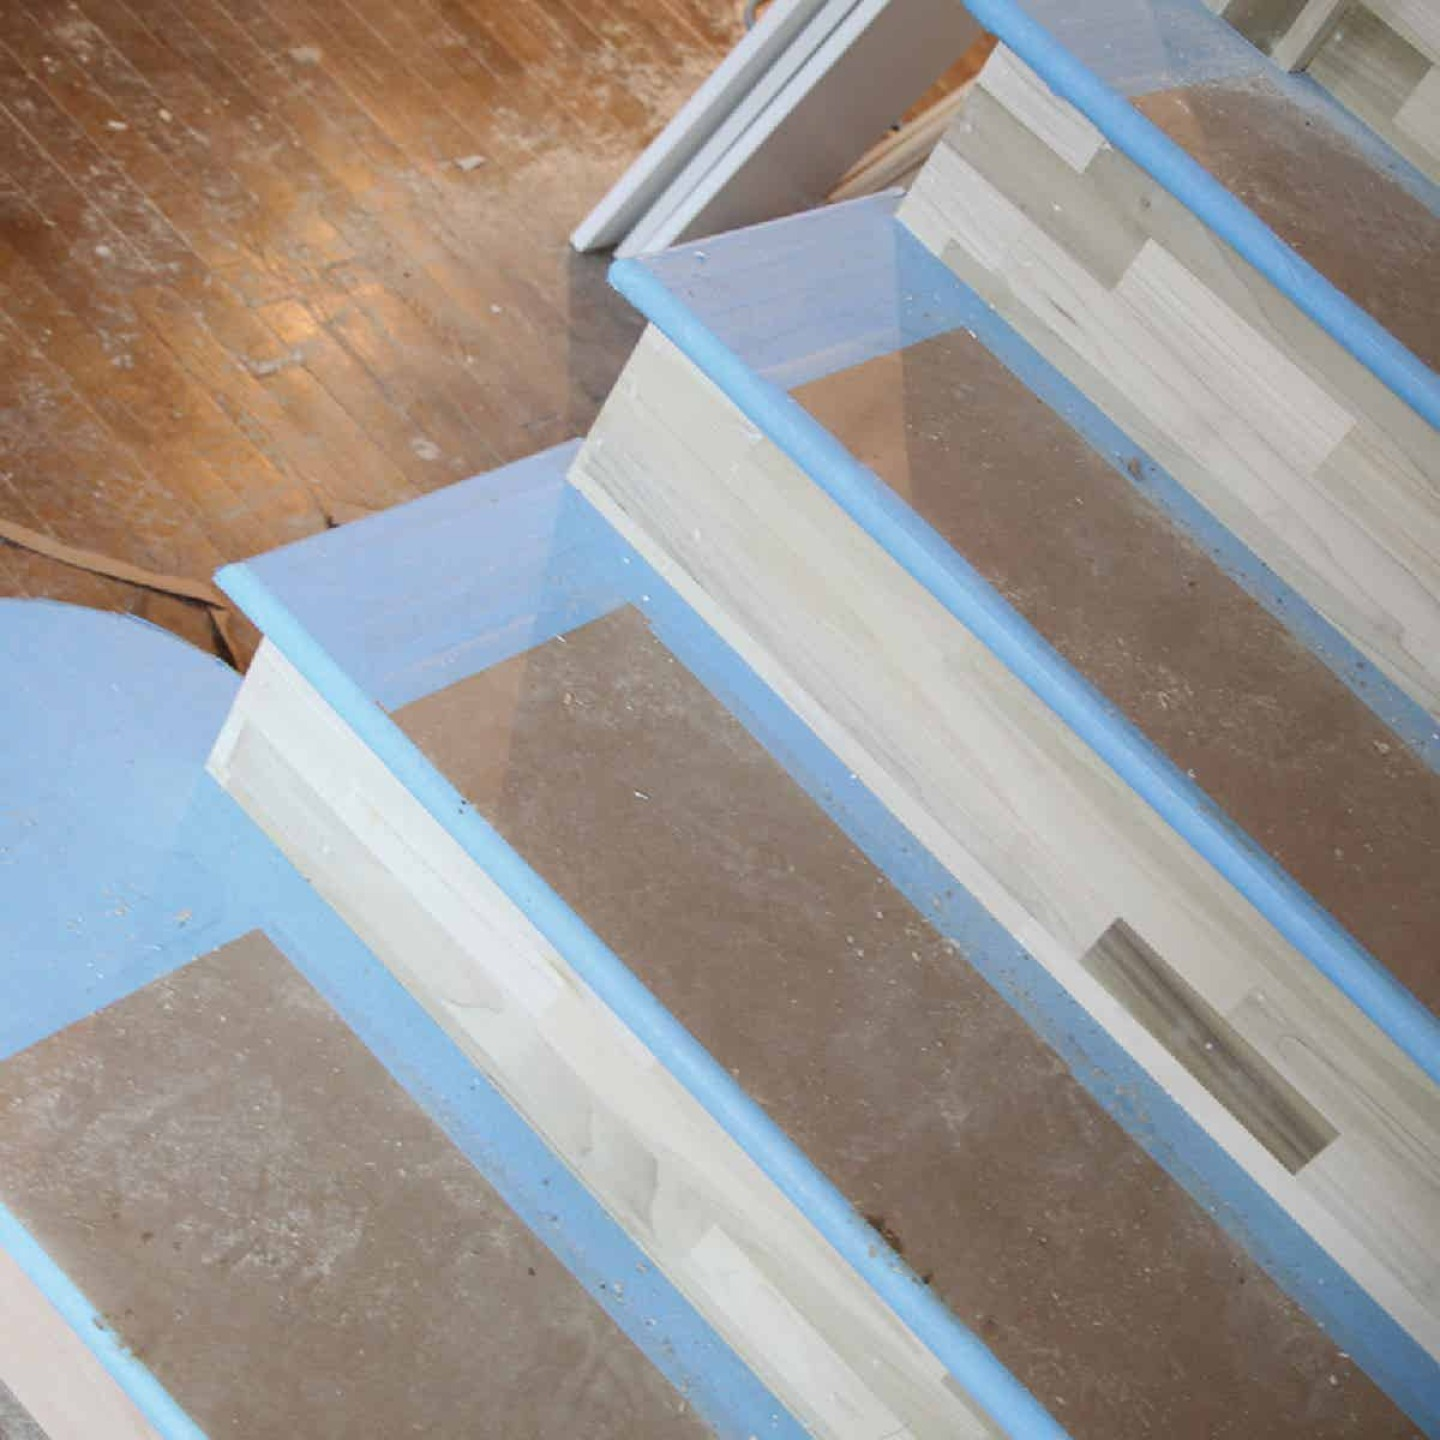 Trimaco X-Paper 36 In. W x 120 Ft. L Floor Protector Image 2